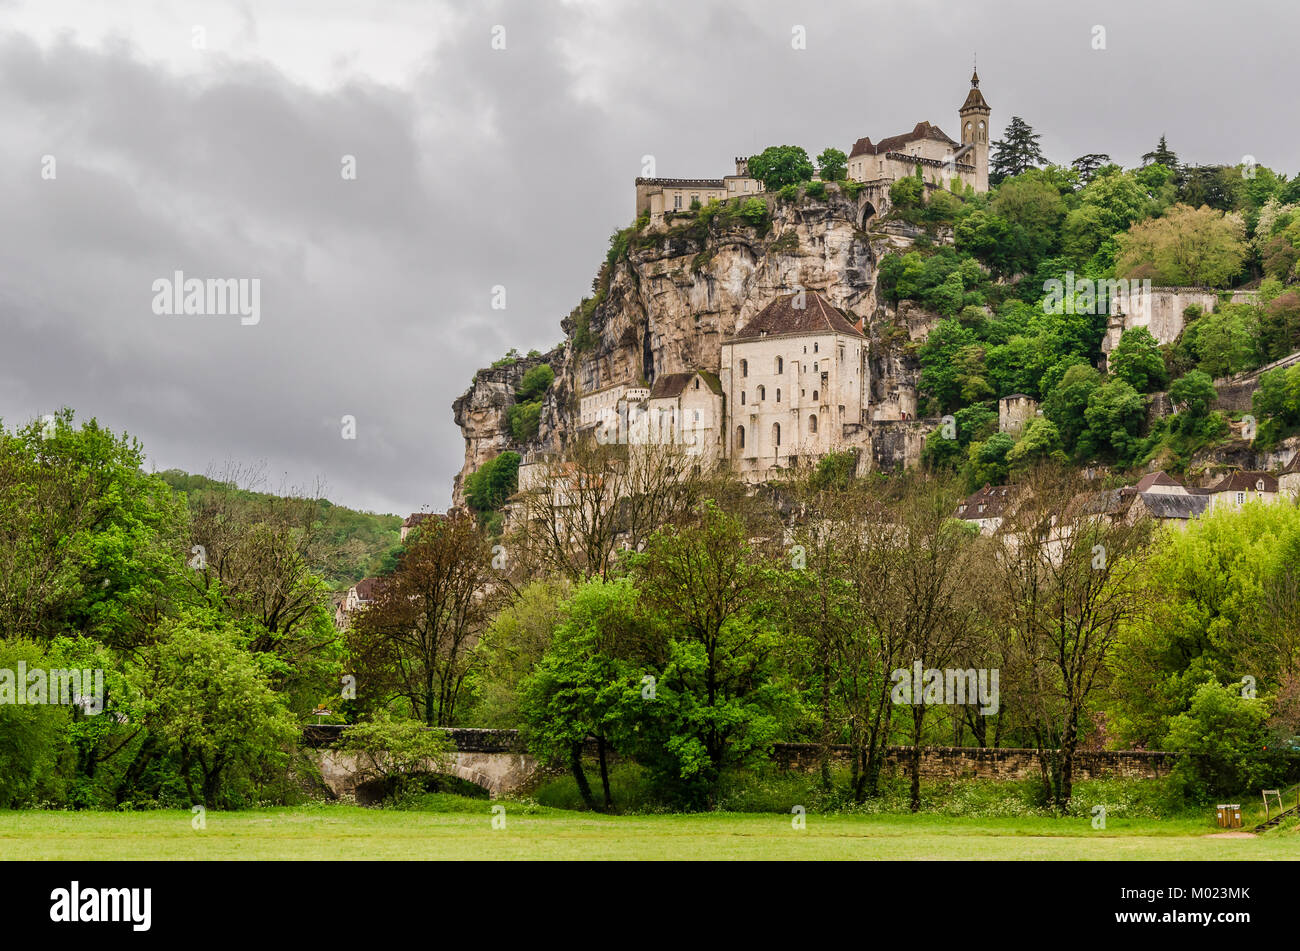 View of the medieval village of Rocamadour in the midi pyrenees region. It is located on top of a calcareous mountain - Stock Image